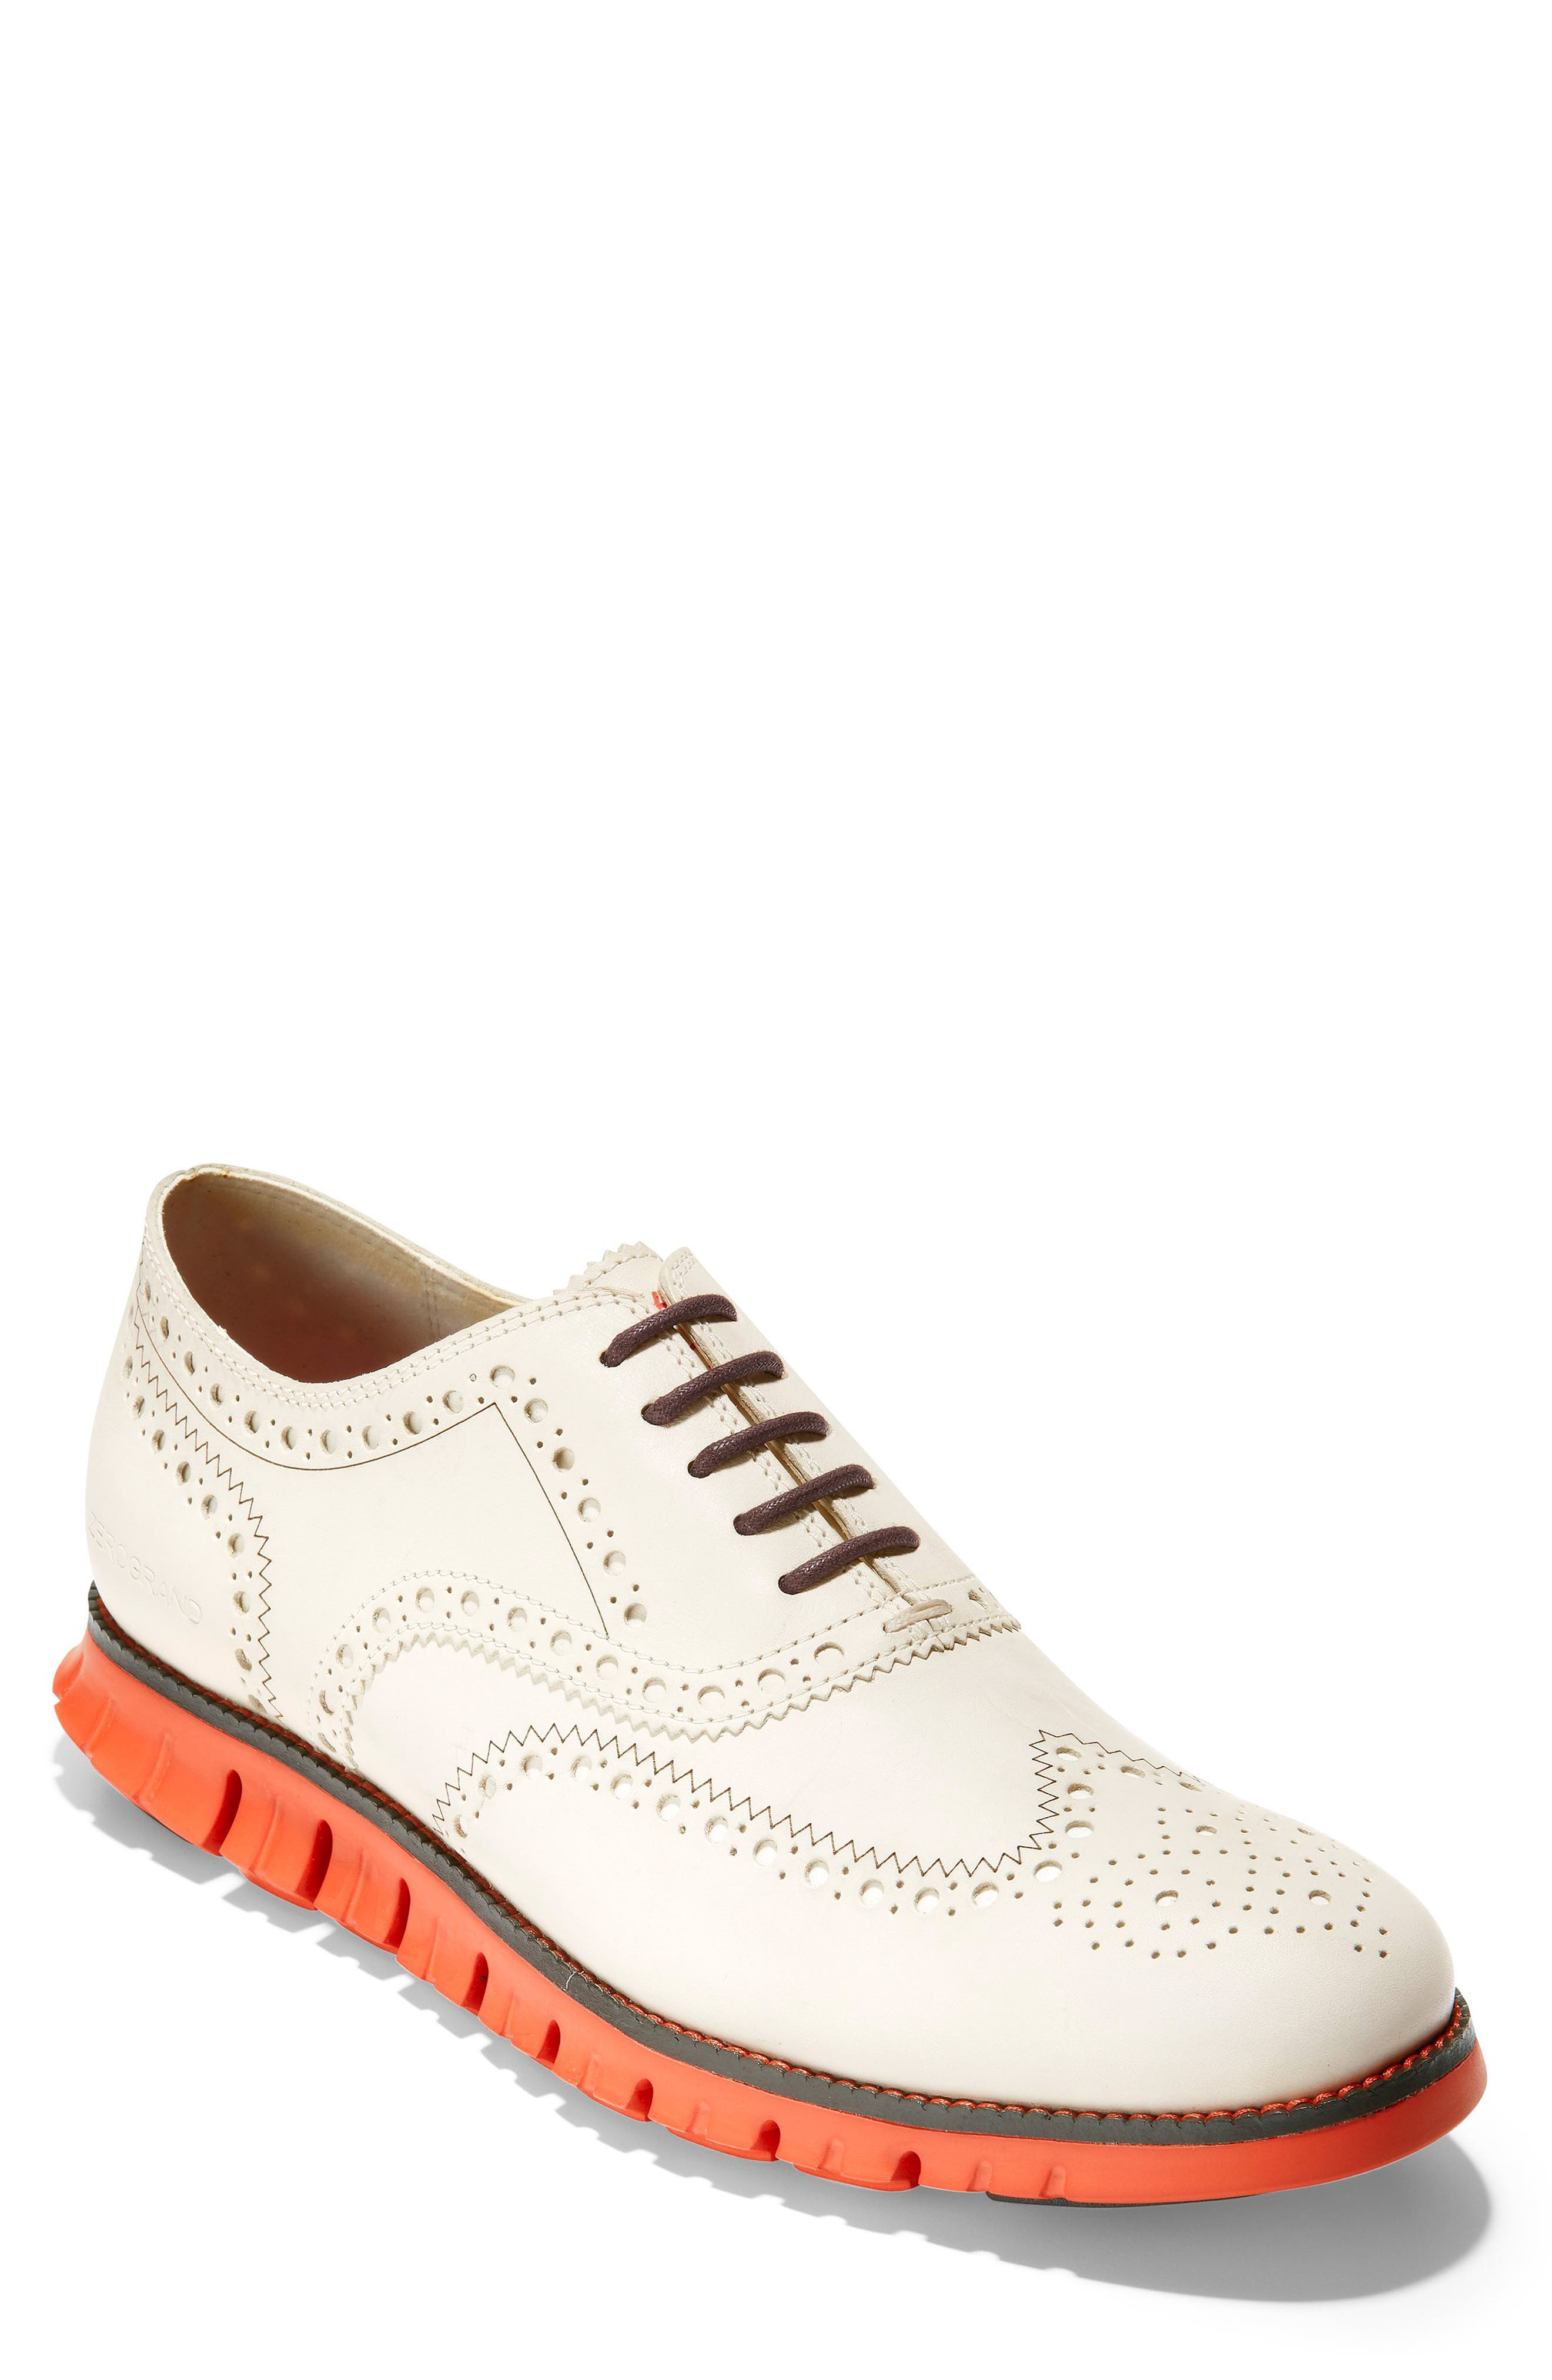 'ZeroGrand' Wingtip Oxford, Main, color, IVORY LEATHER/ DARK ROAST